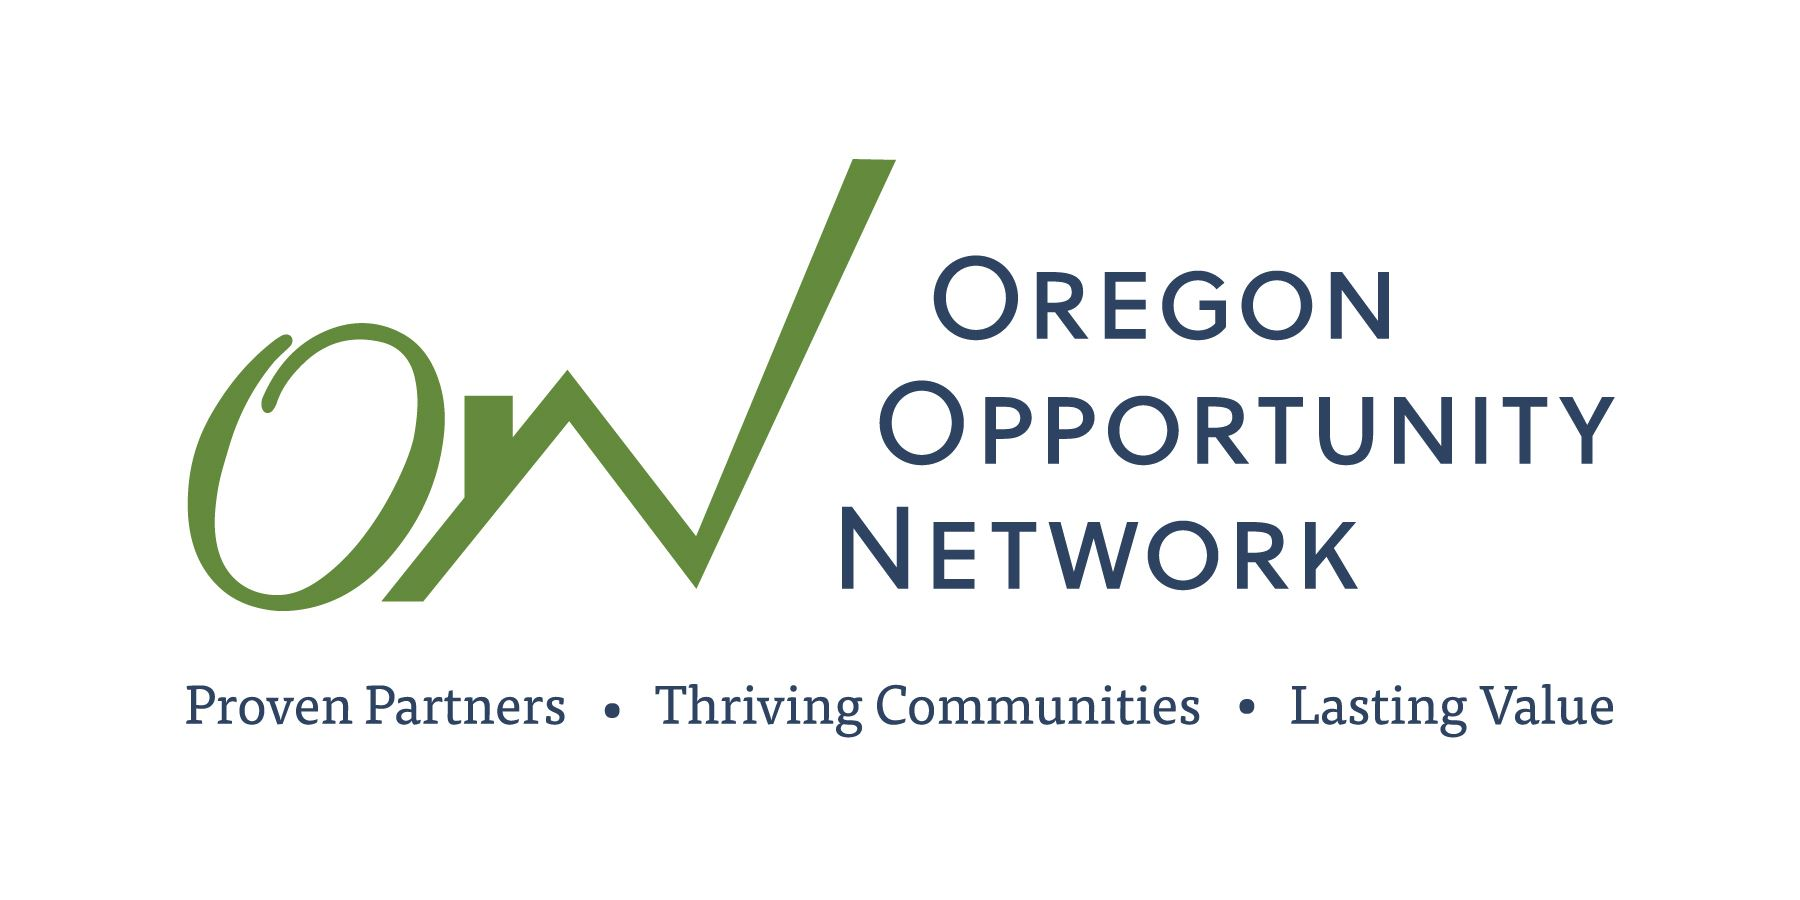 Oregon Opportunity Network